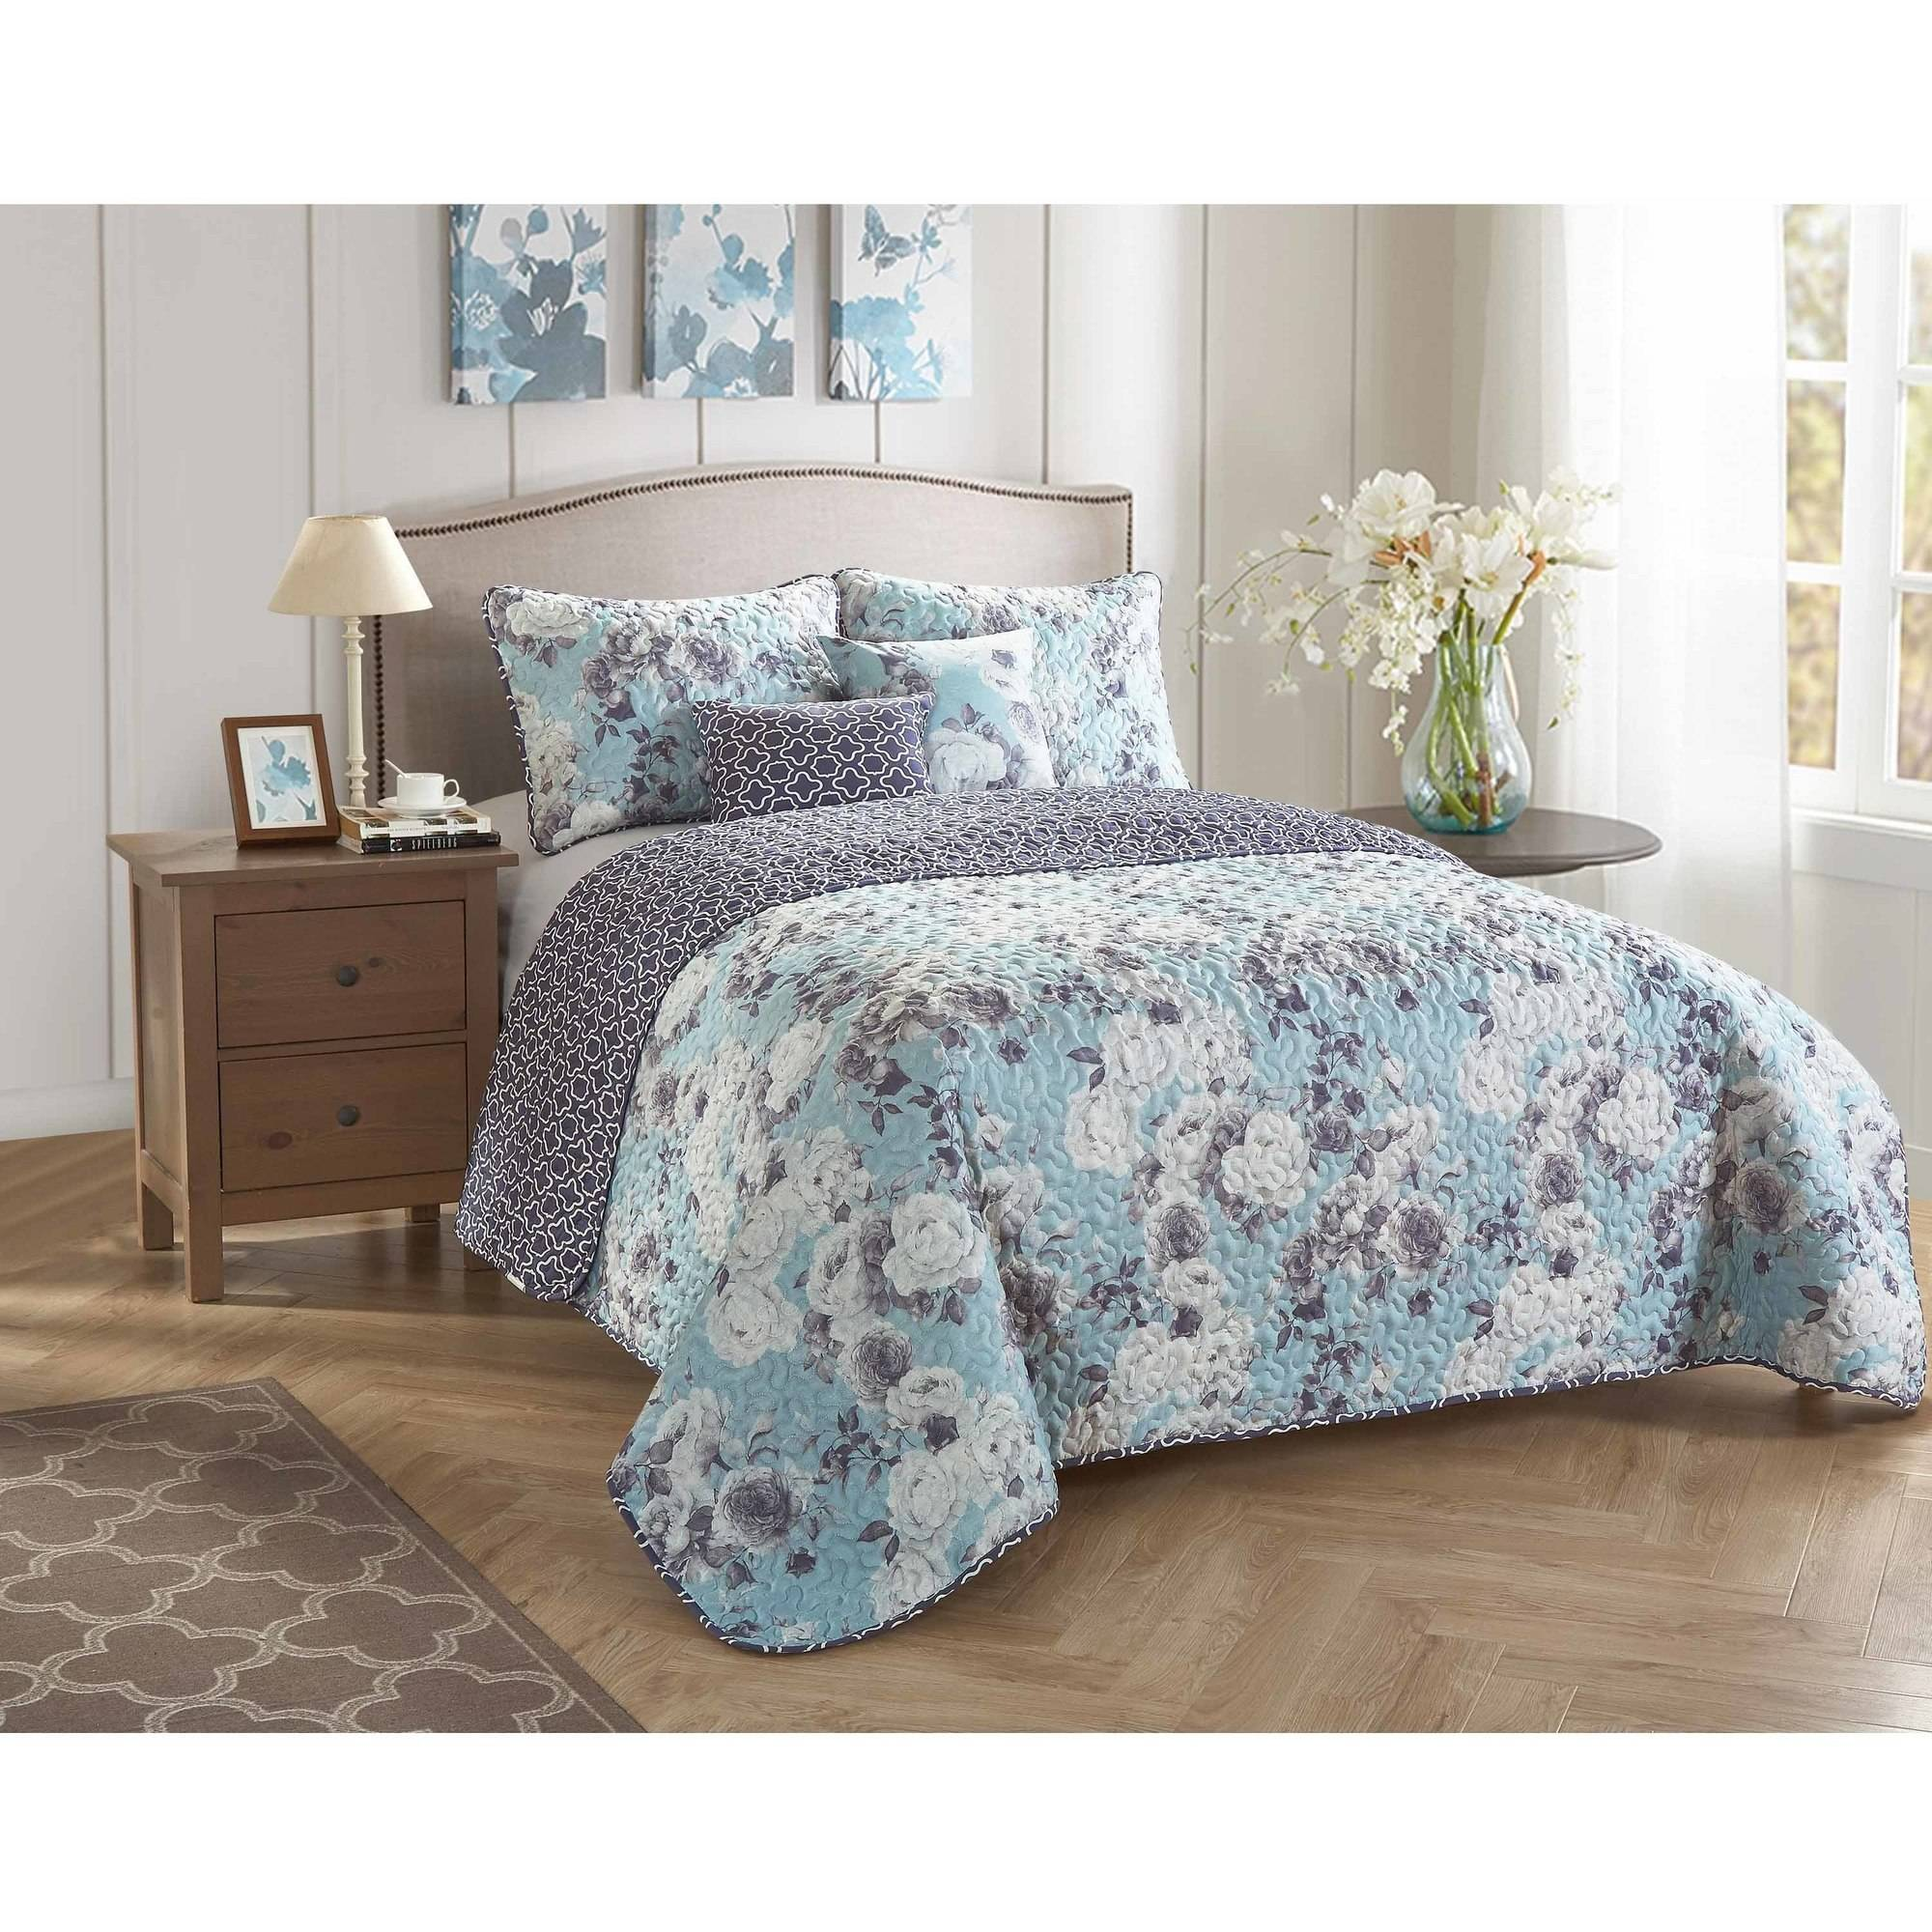 StyleNest Lisa 5-Piece Bedding Quilt Set by Idea Nuova